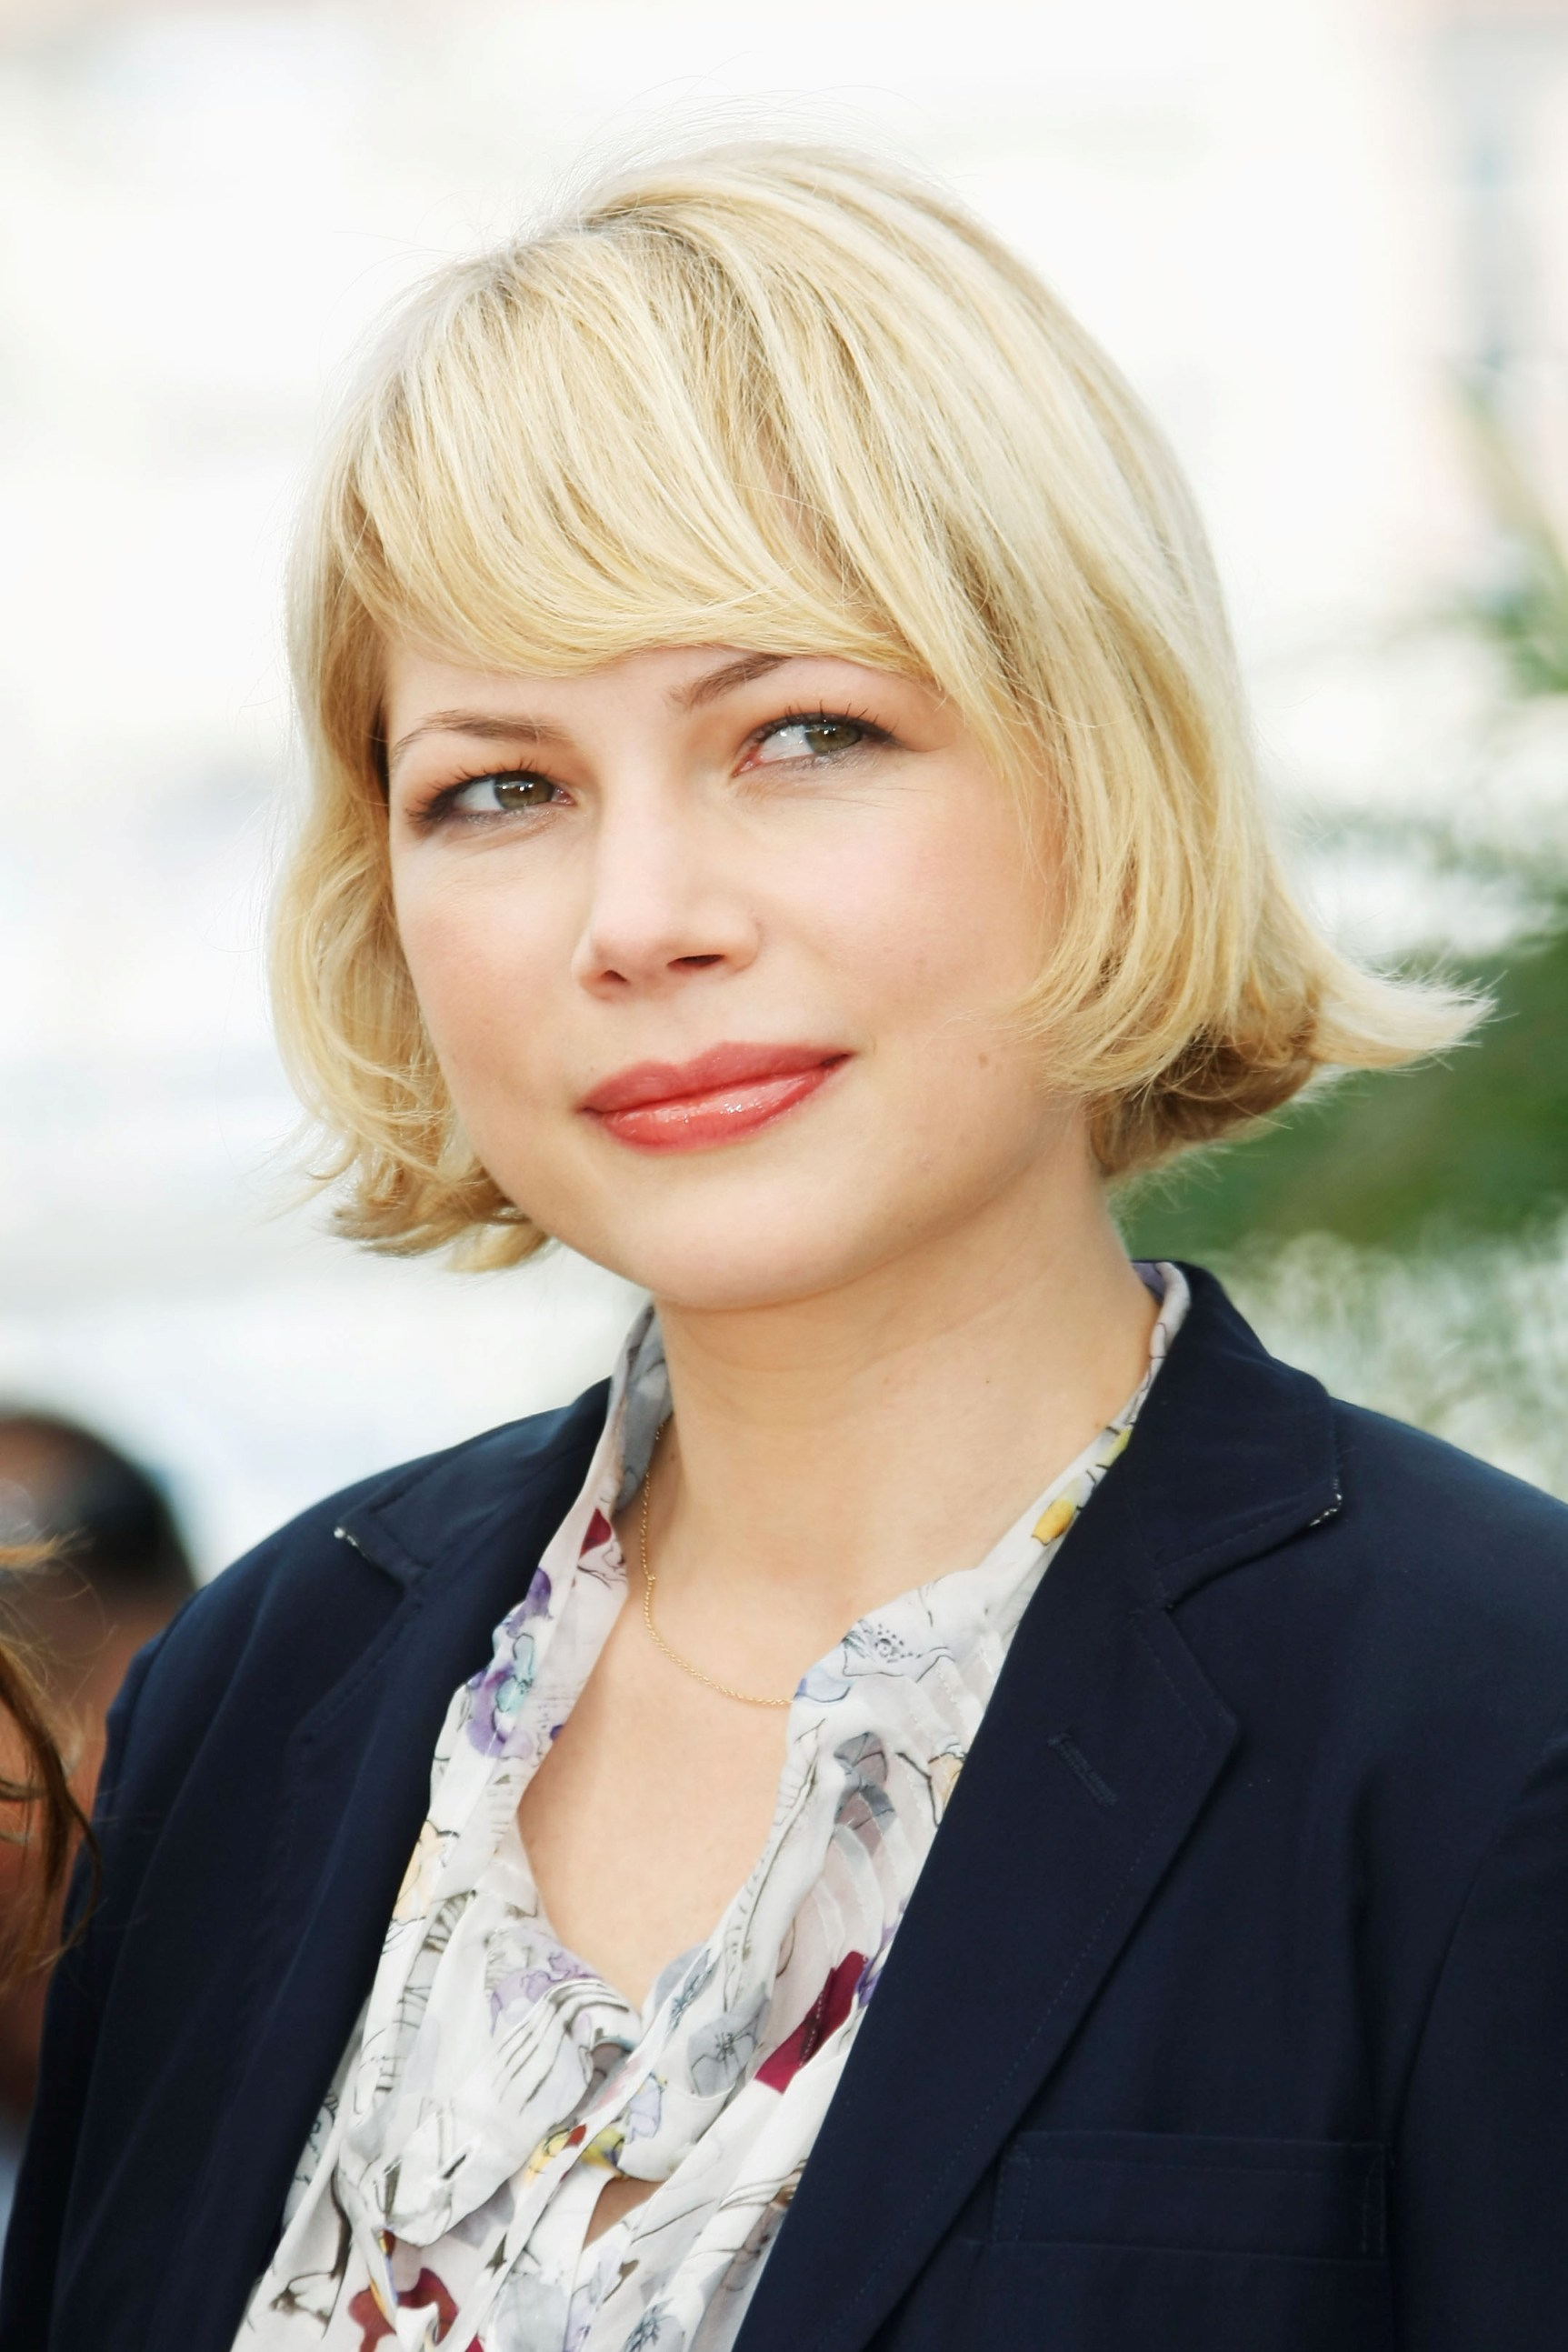 Michelle Williams(actress) photo 3 of 380 pics, wallpaper ... Michelle Williams Actress